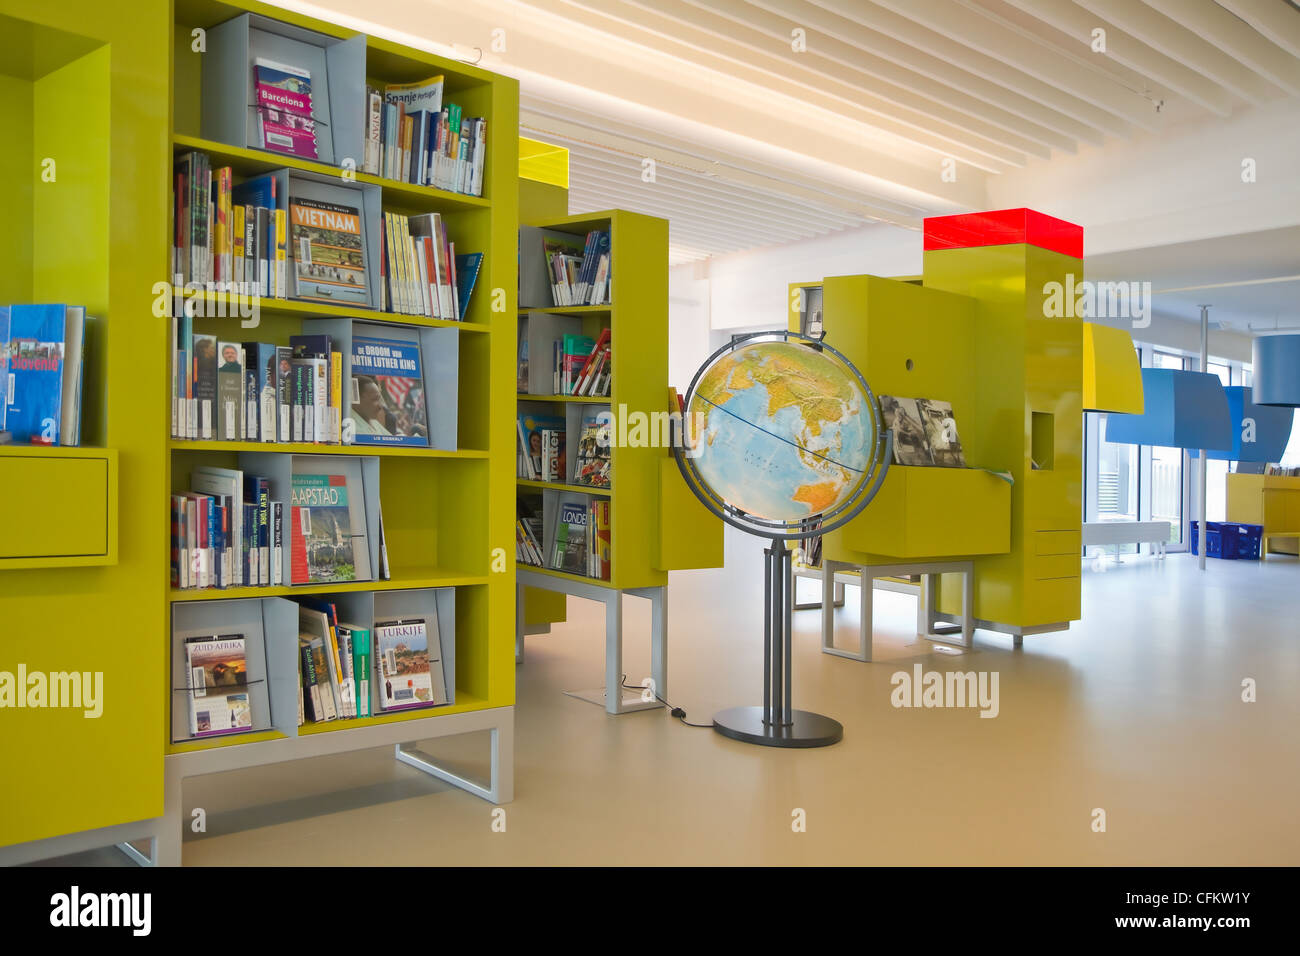 parts of library 3dmodelspace helps engineers and cad designers find 3d cad models and cad drawings of supplier parts.